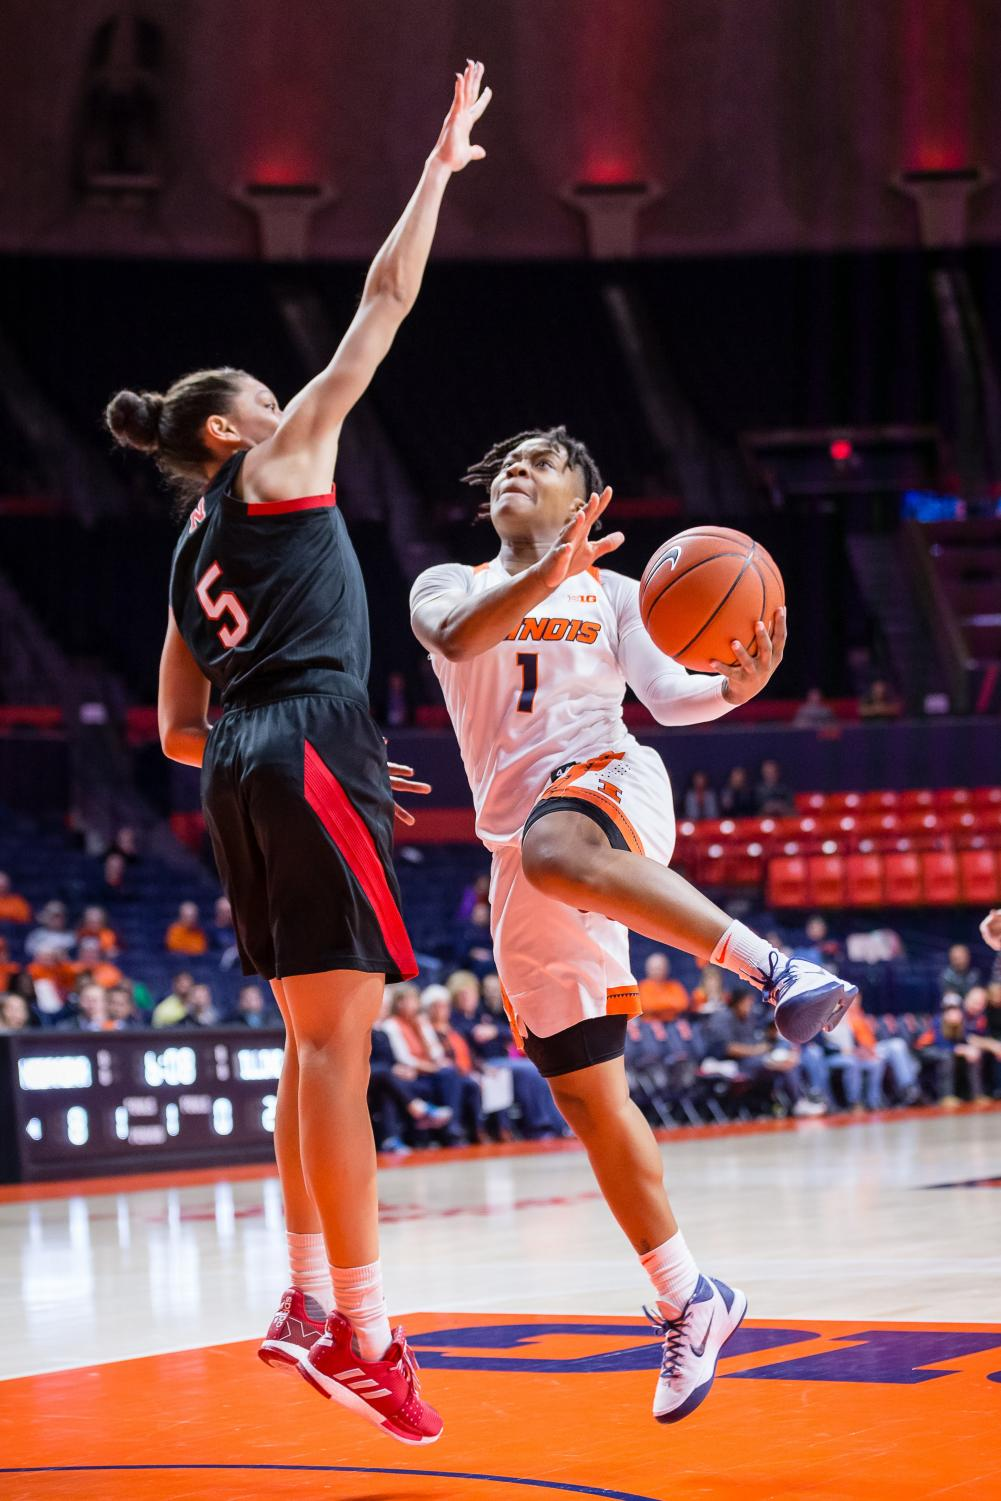 Illinois guard Brandi Beasley goes up for a layup during the game against Nebraska at the State Farm Center on Jan. 17. The Illini lost 77-67.